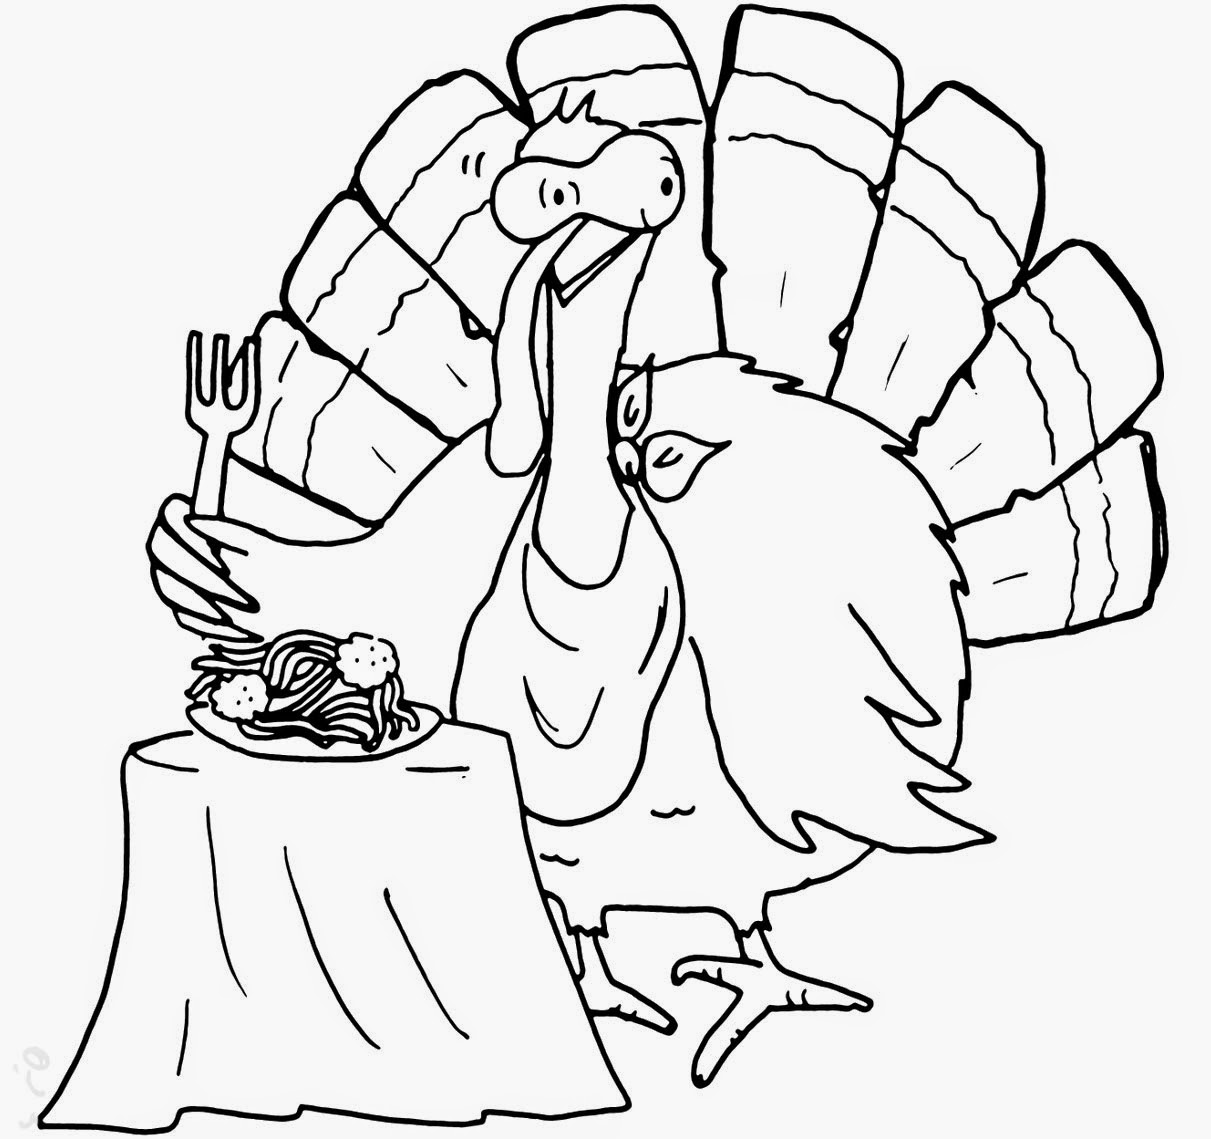 turkey color page coloring pages turkey coloring pages free and printable color page turkey 1 1